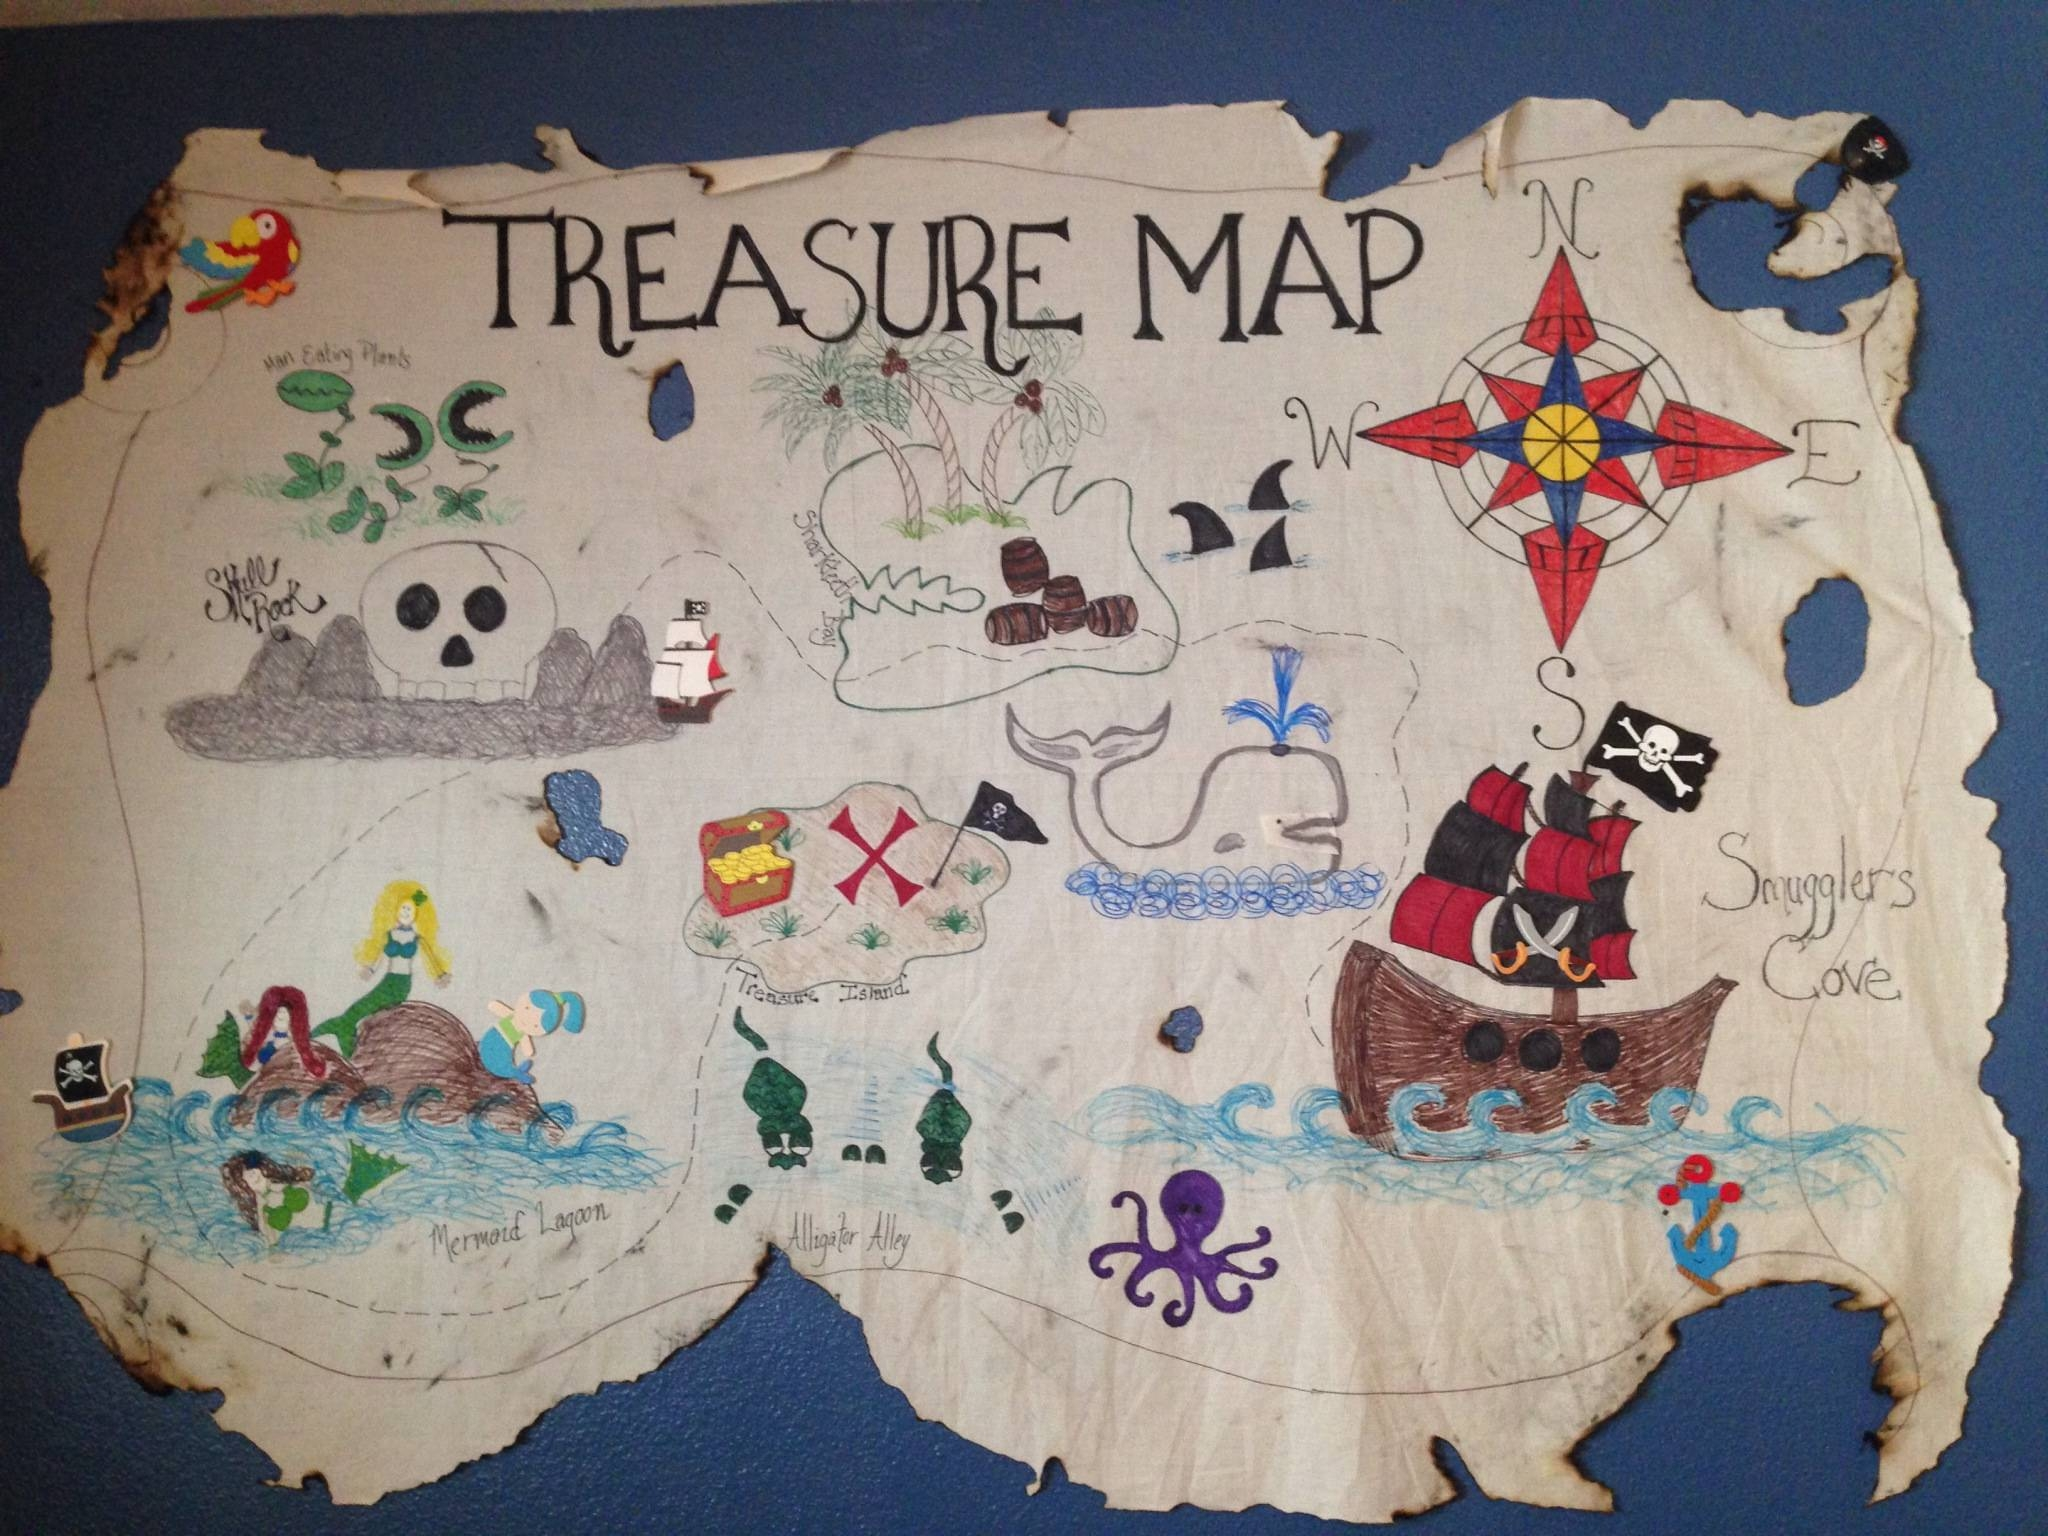 Treasure Map | The Multitasking Mommy Intended For Latest Treasure Map Wall Art (Gallery 17 of 20)